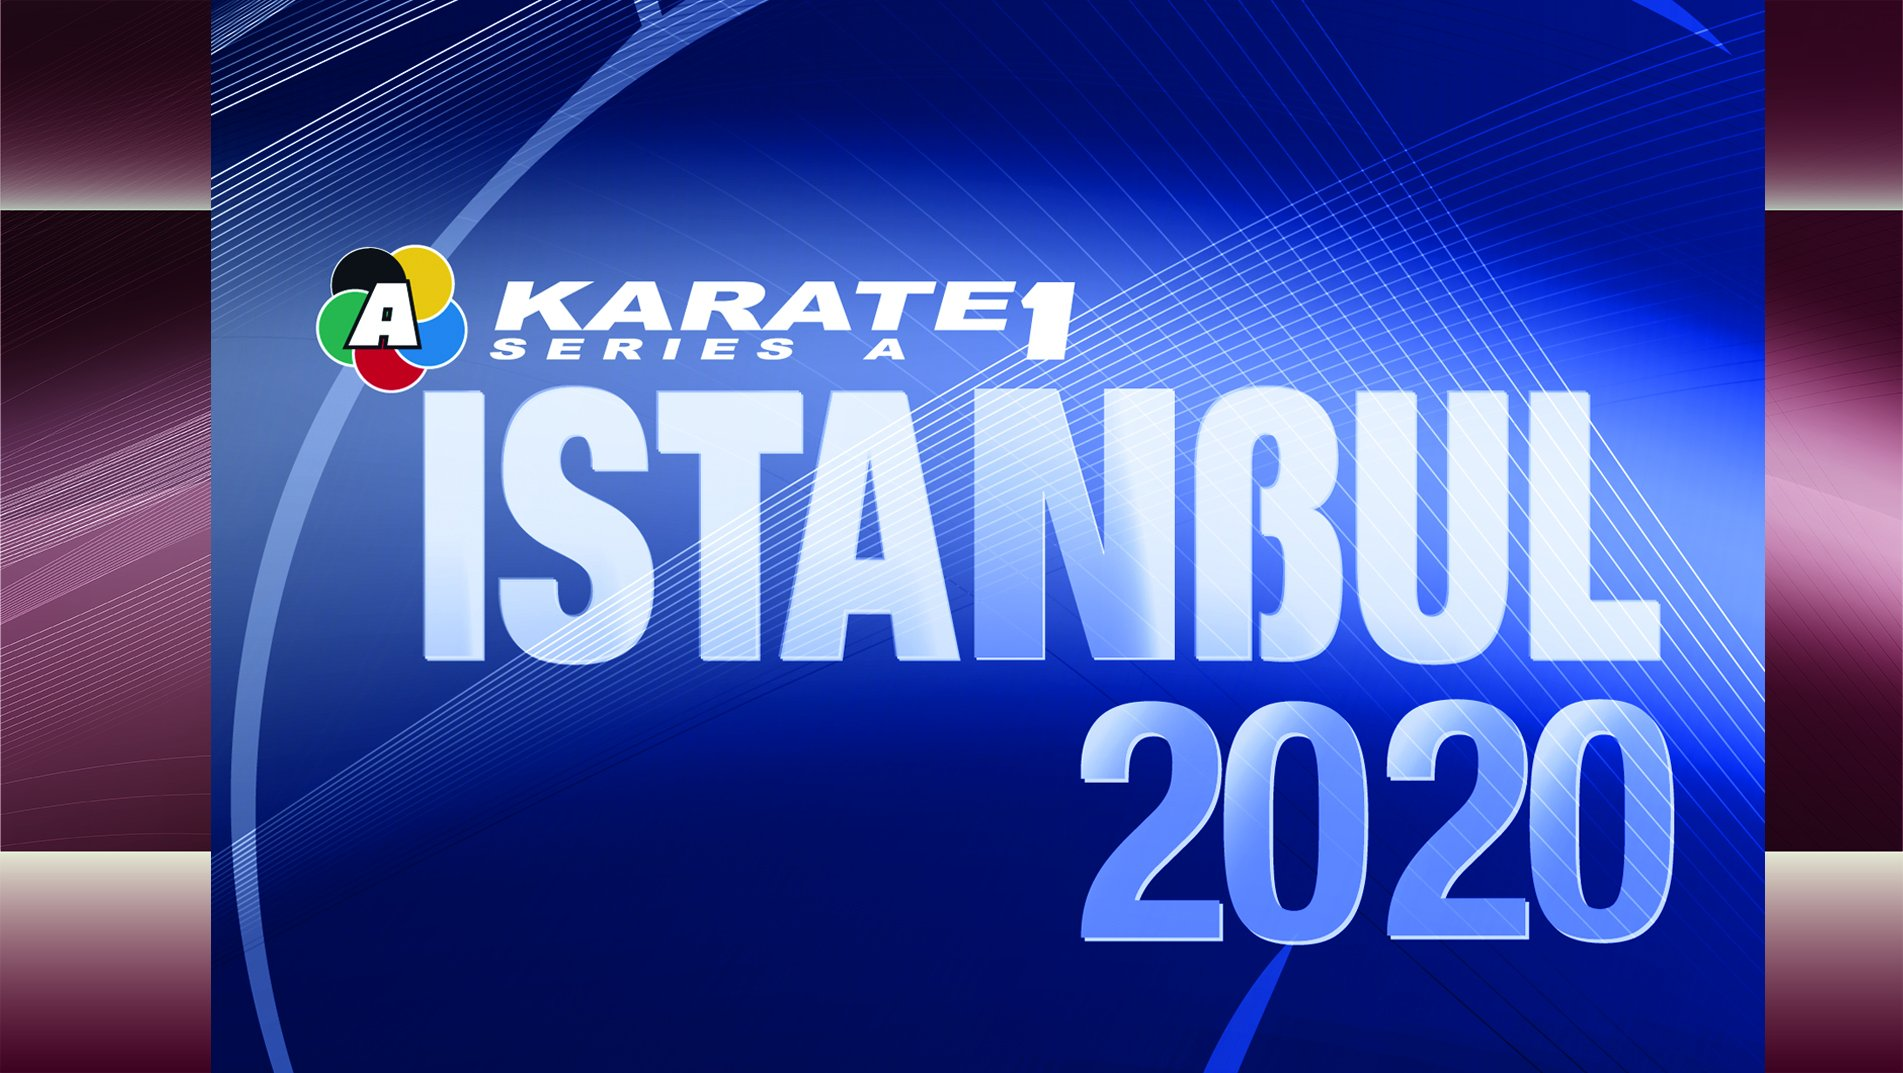 Karate 1-Series A Istanbul cancelled due to coronavirus